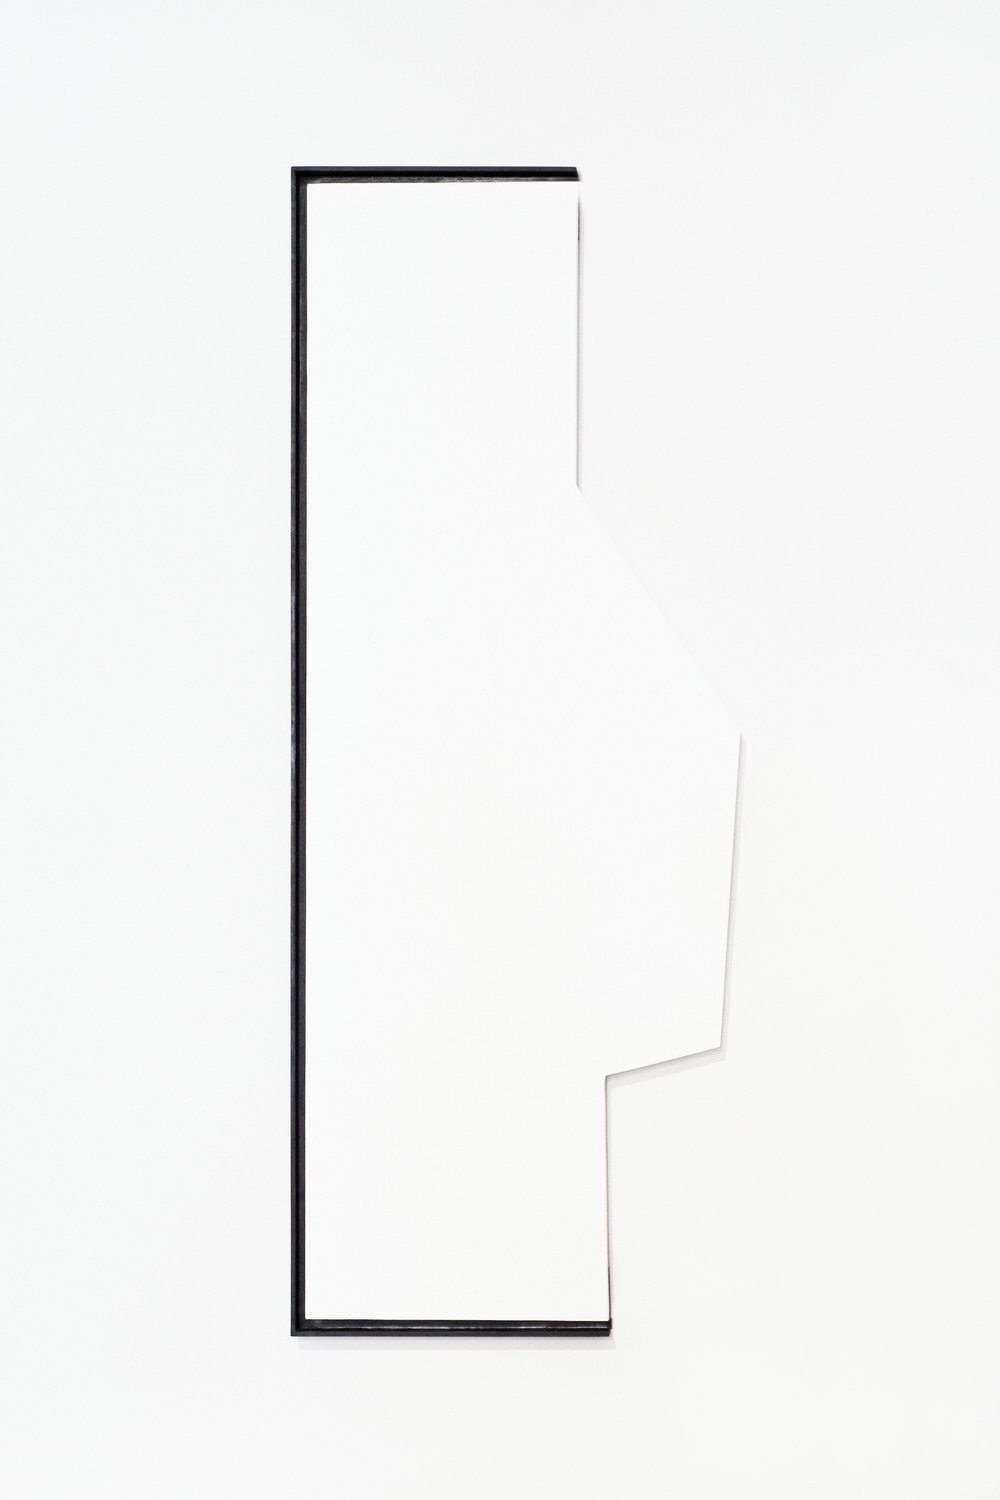 Untitled (19 E 66th St – back), 2013